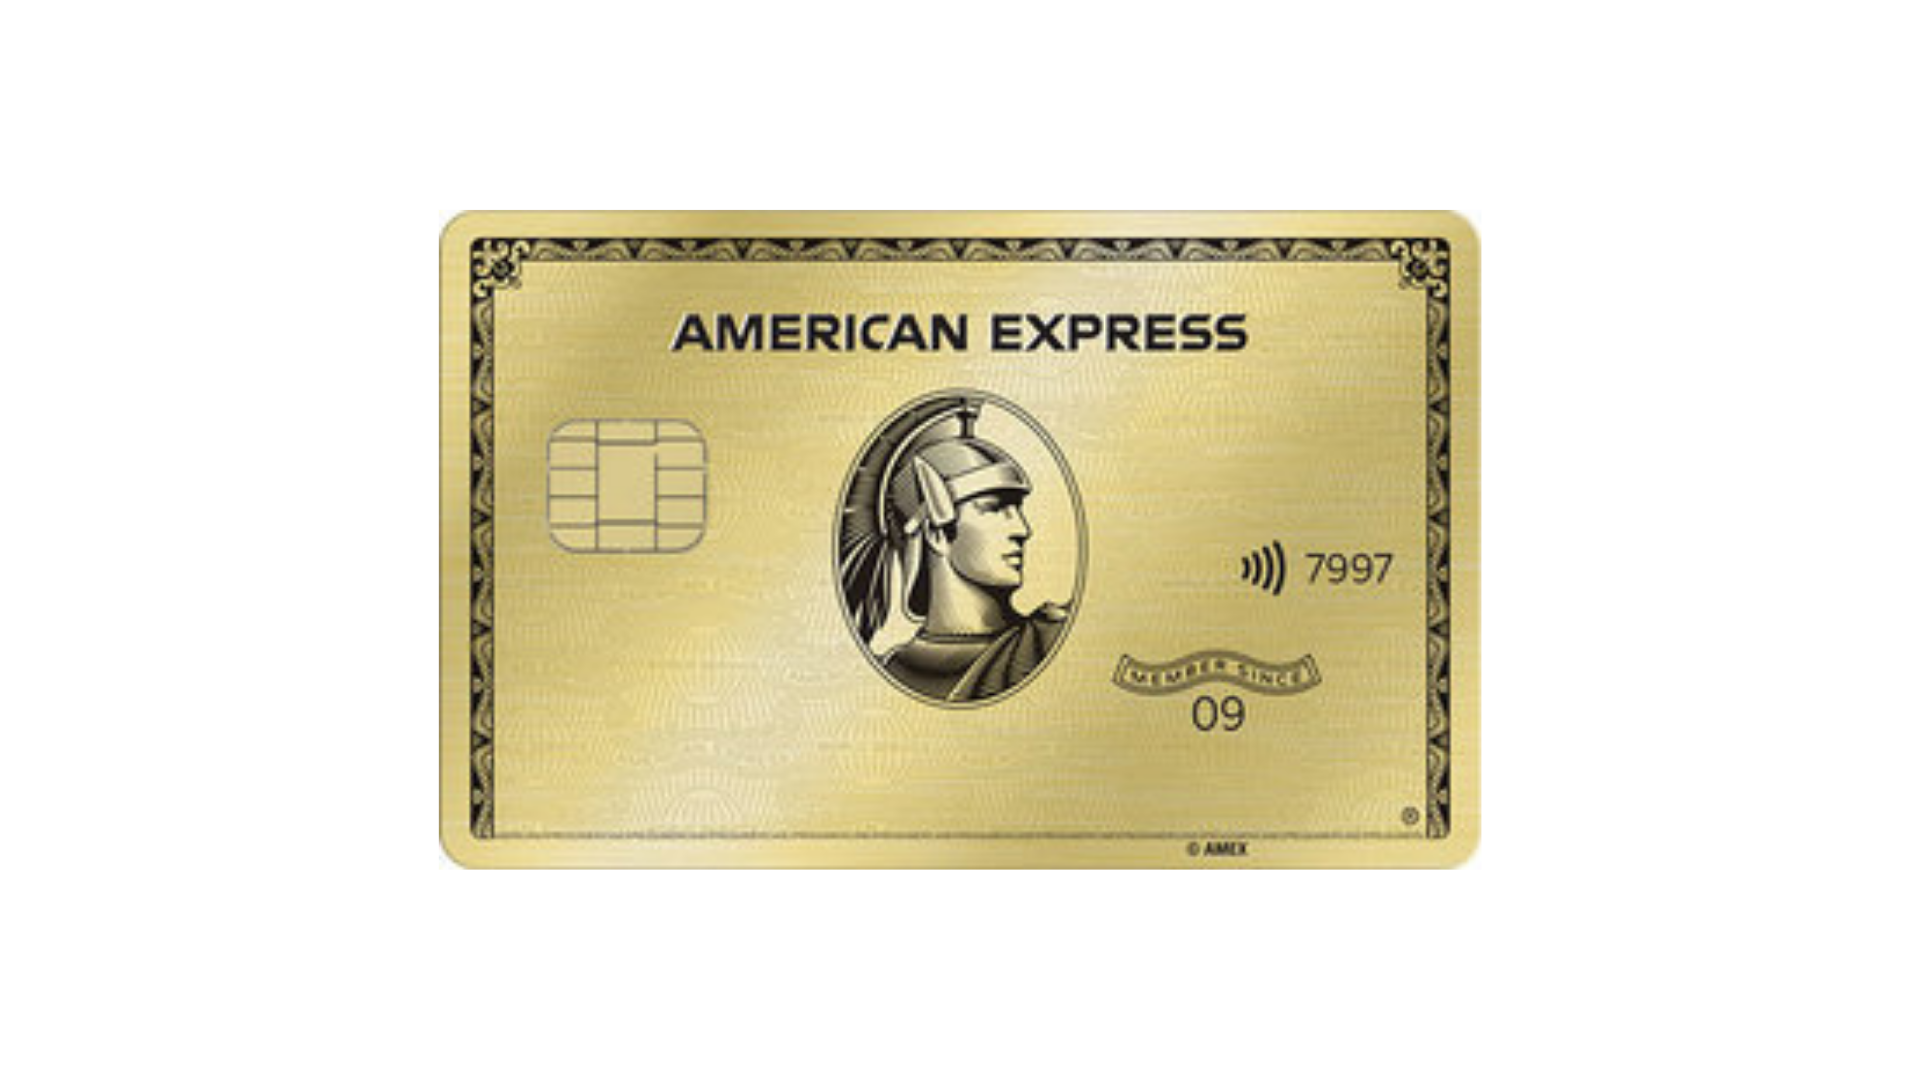 American Express switching credit cards